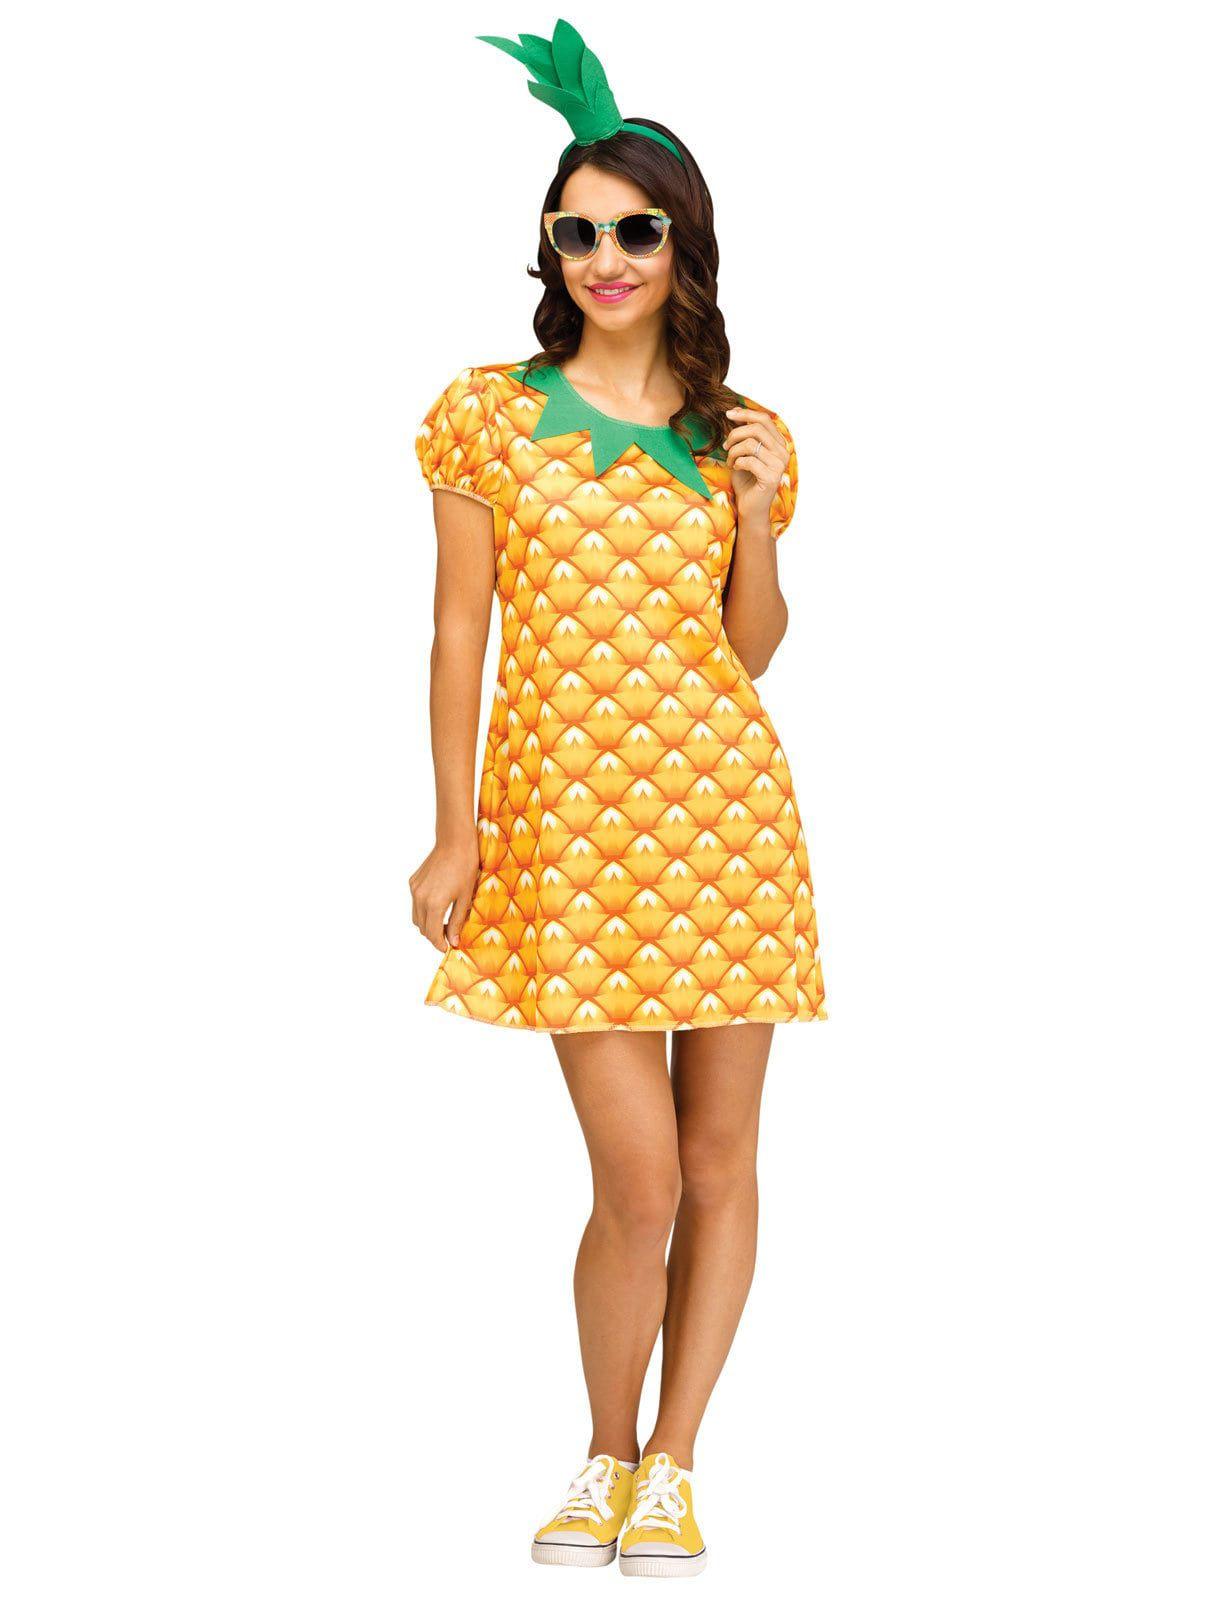 FRUITS AND FLOWERS -  PINEAPPLE COSTUME (ADULT)